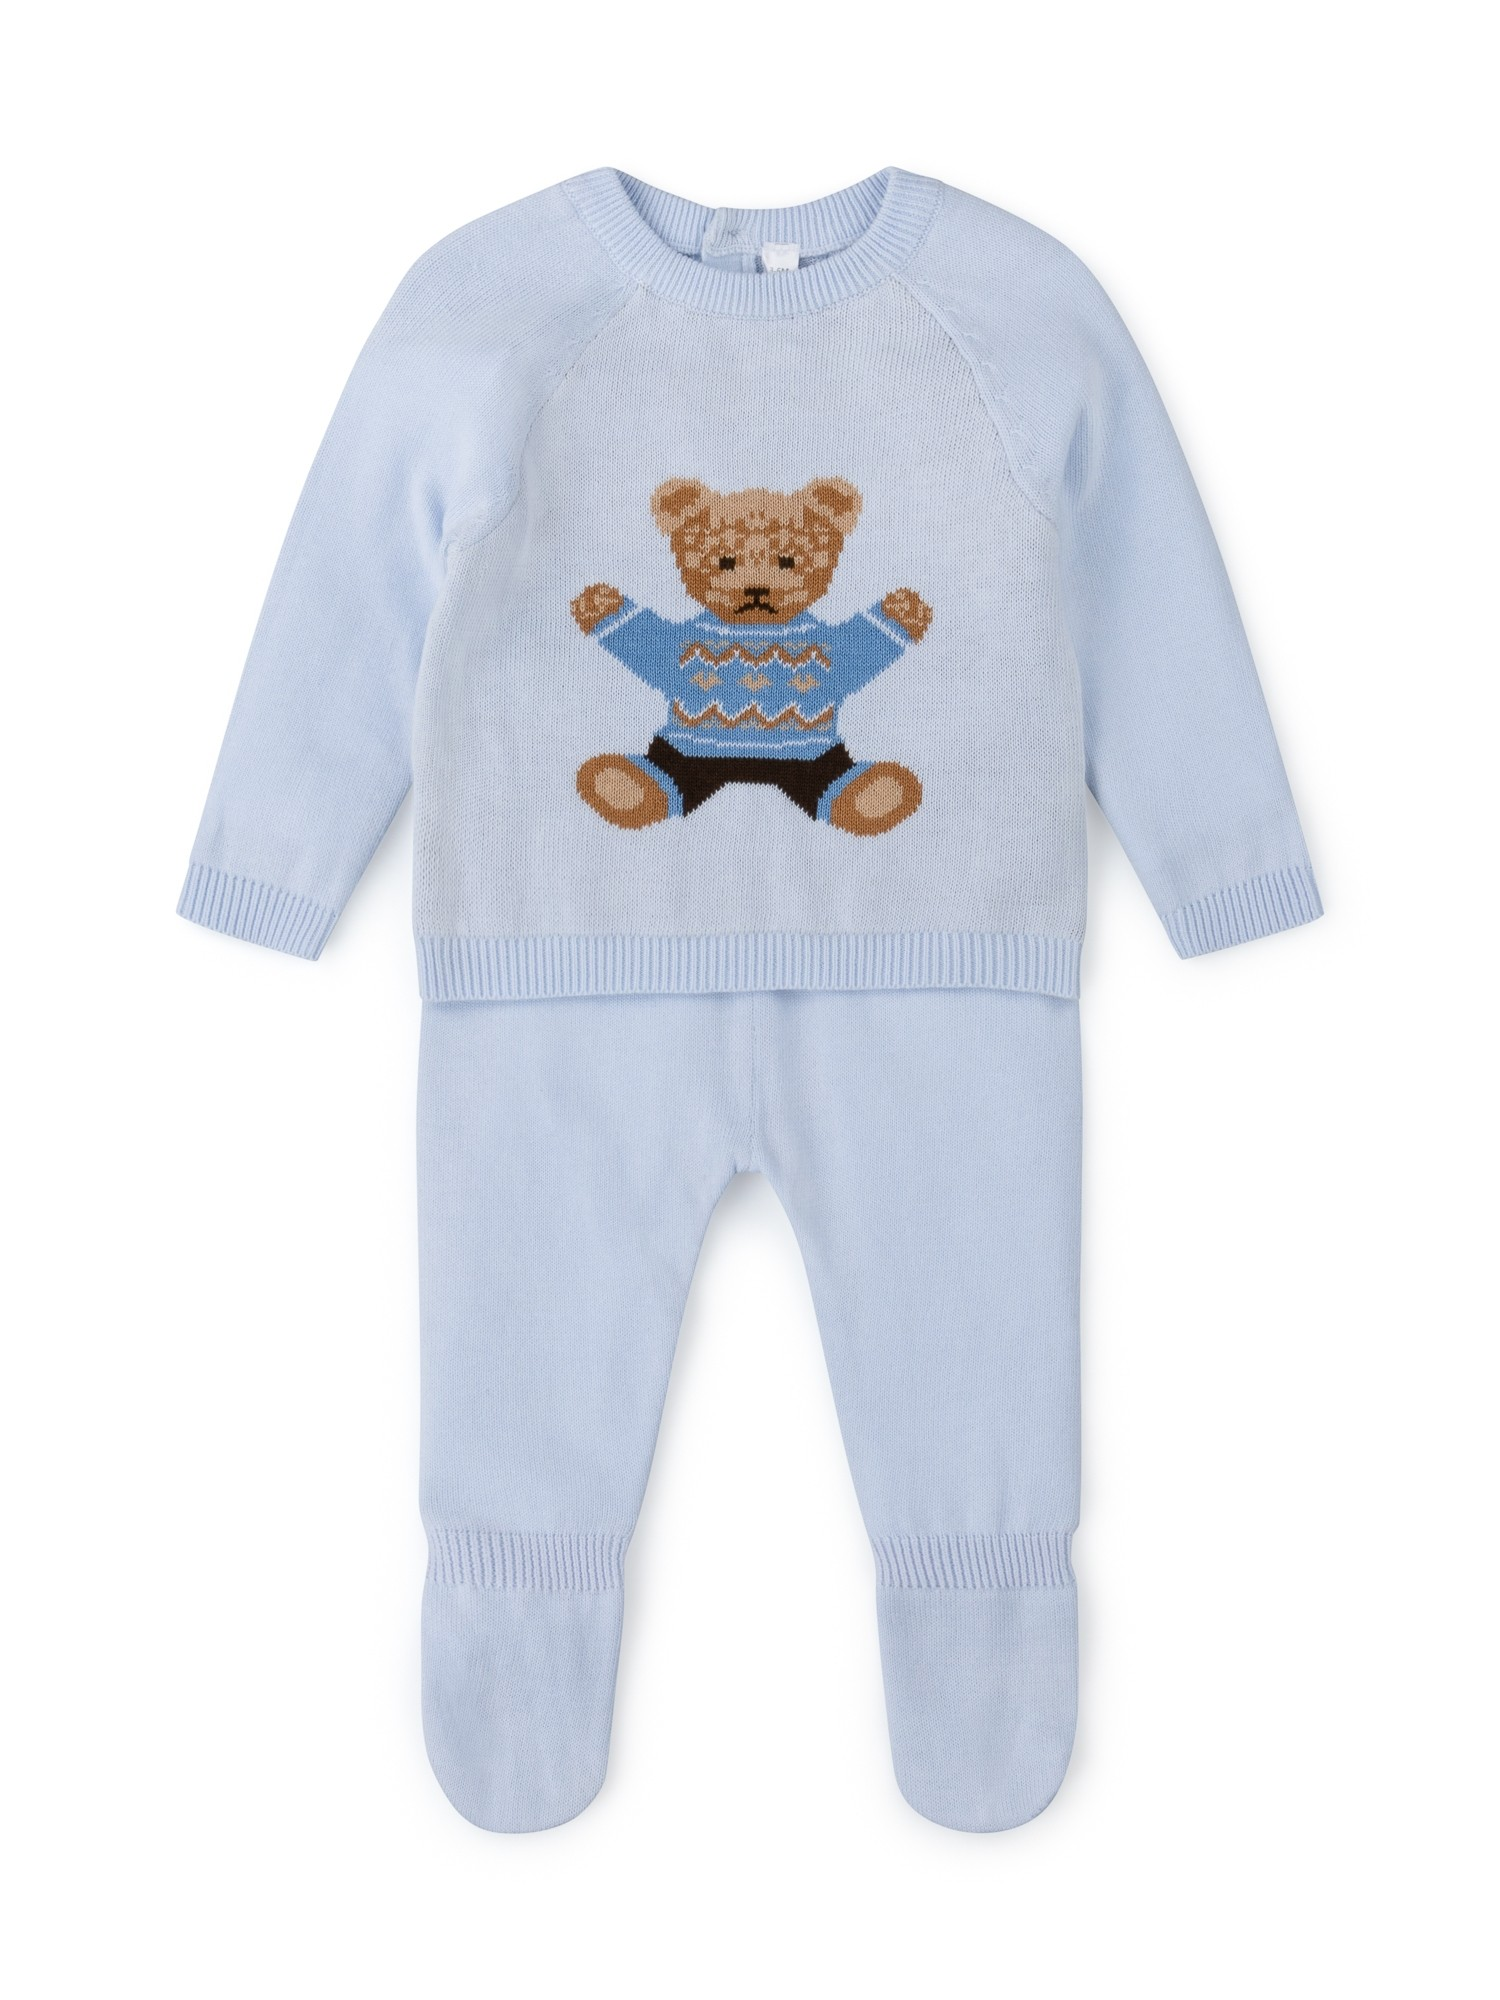 Rock a Bye Baby Boutique Baby 'Bear' Boys Knitted Set PACK OF 6